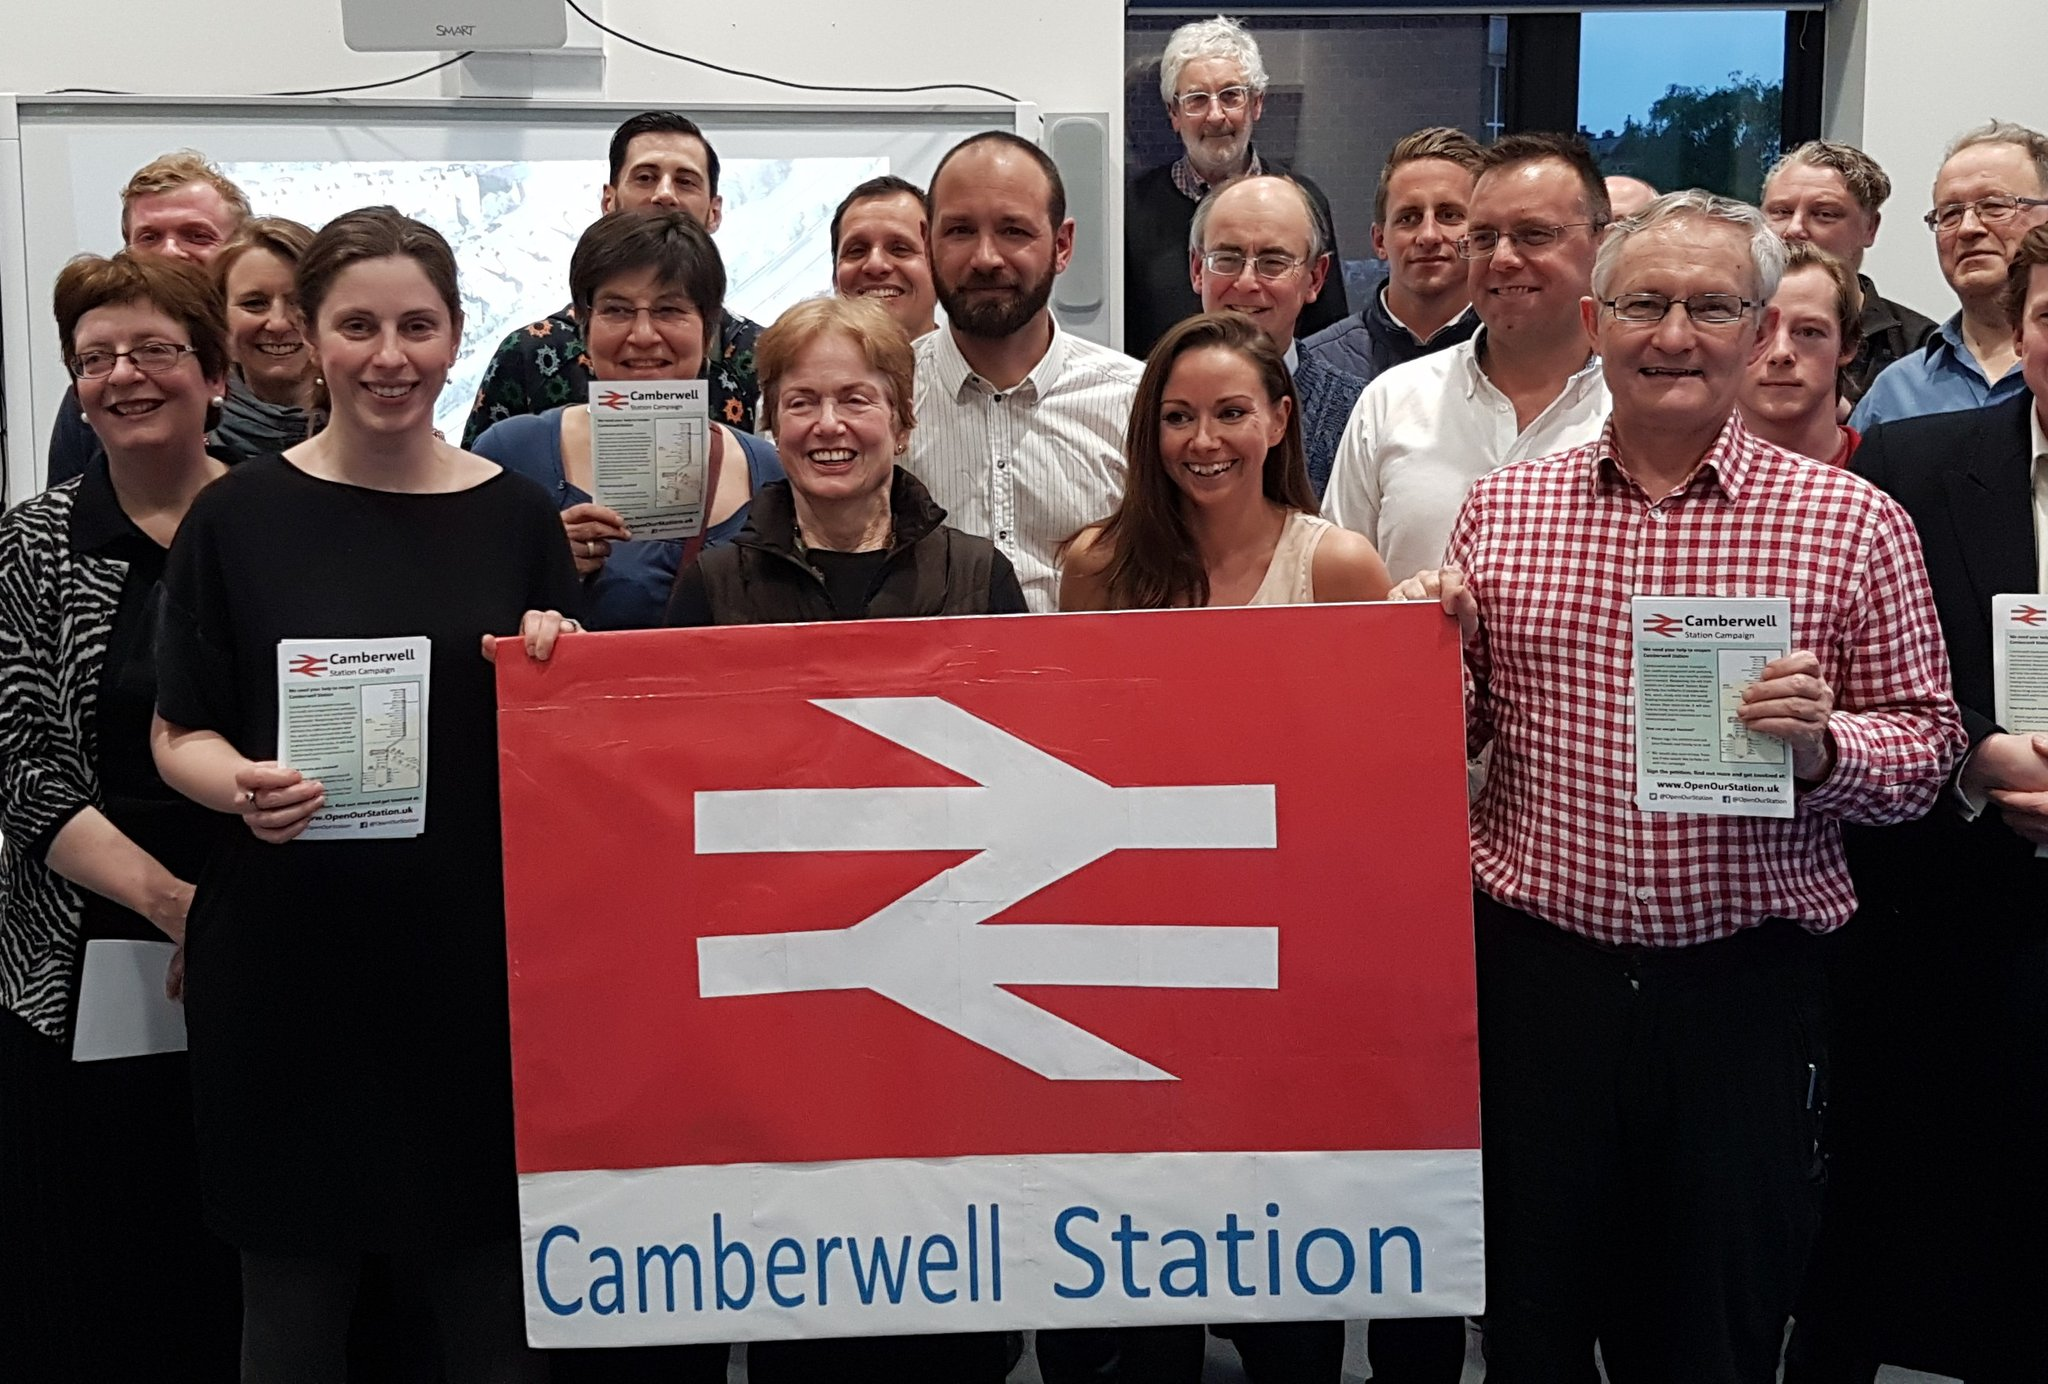 Camberwell_Station_Campaign_2.jpg